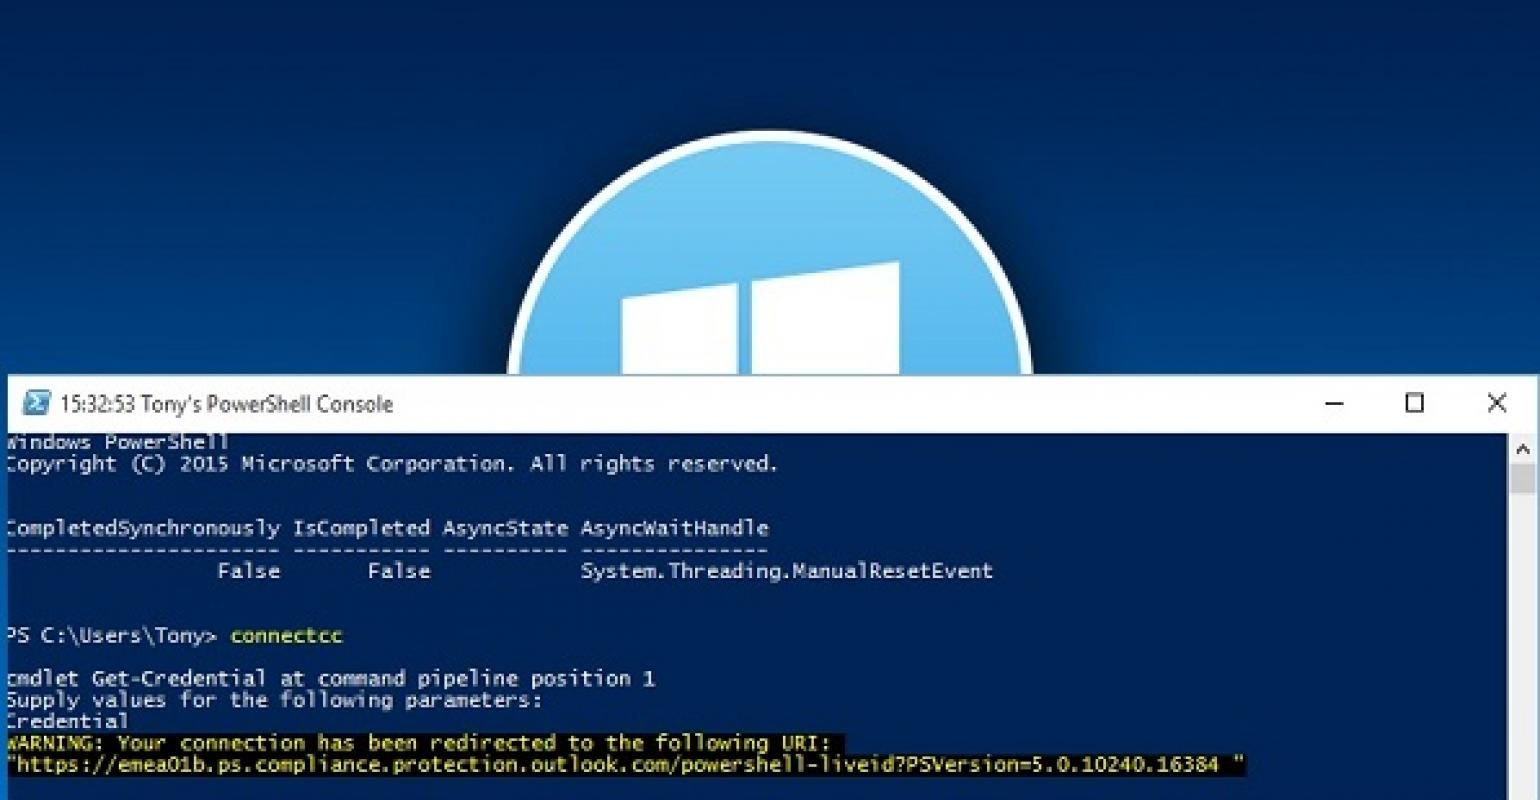 Windows 10 Build 10525, PowerShell, and Office 365 | IT Pro